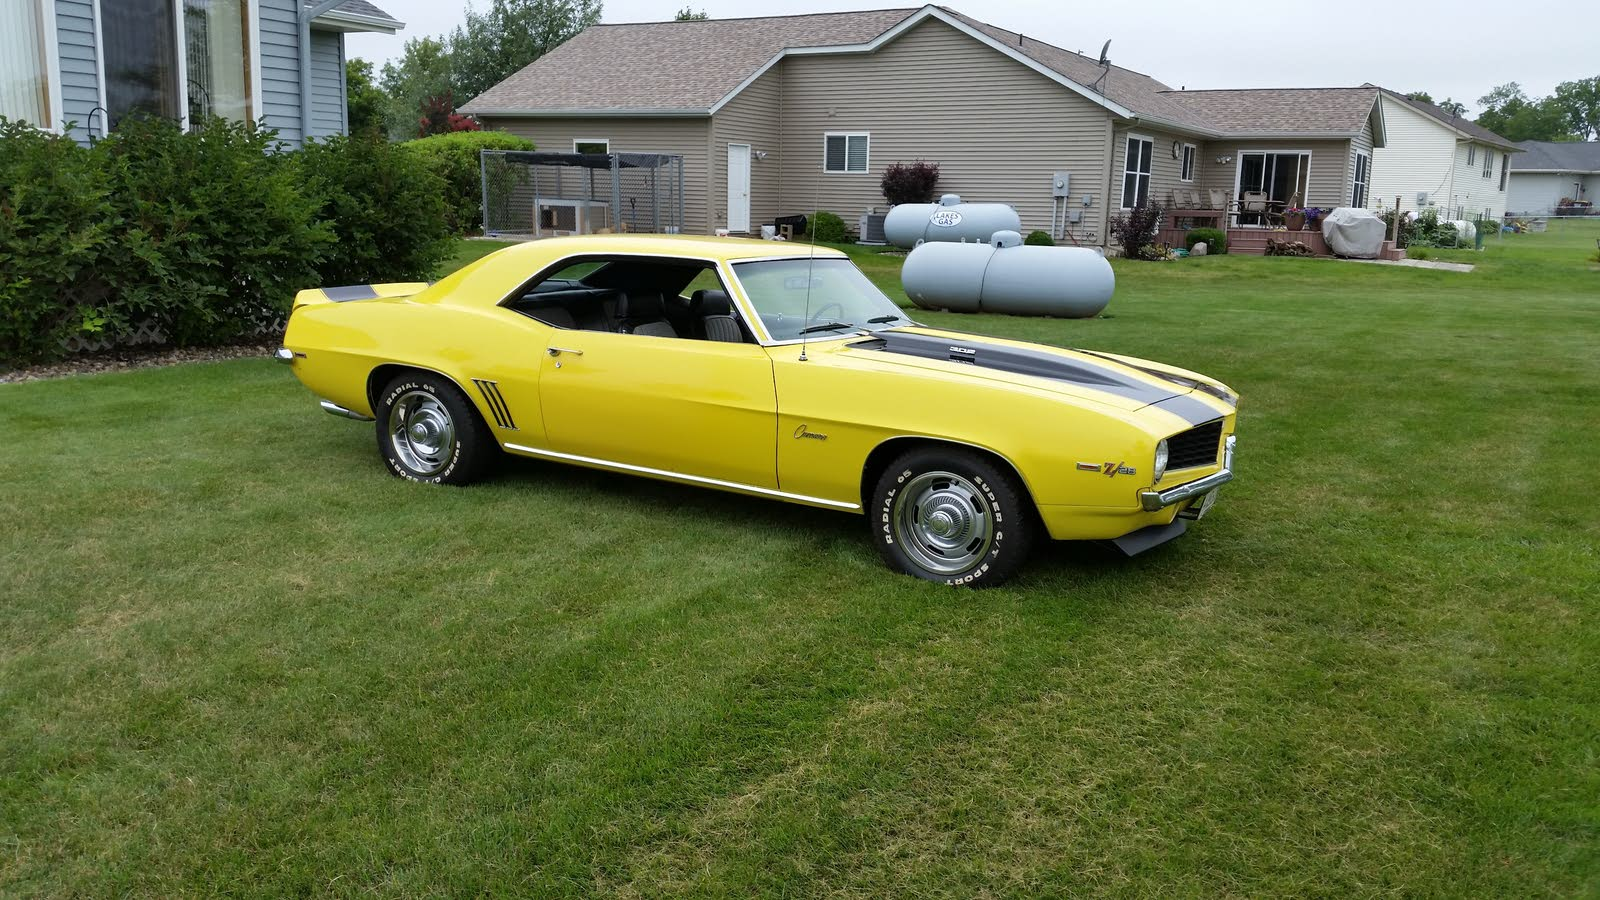 Chevrolet Camaro Questions - How much is a Z28 1969 Camaro